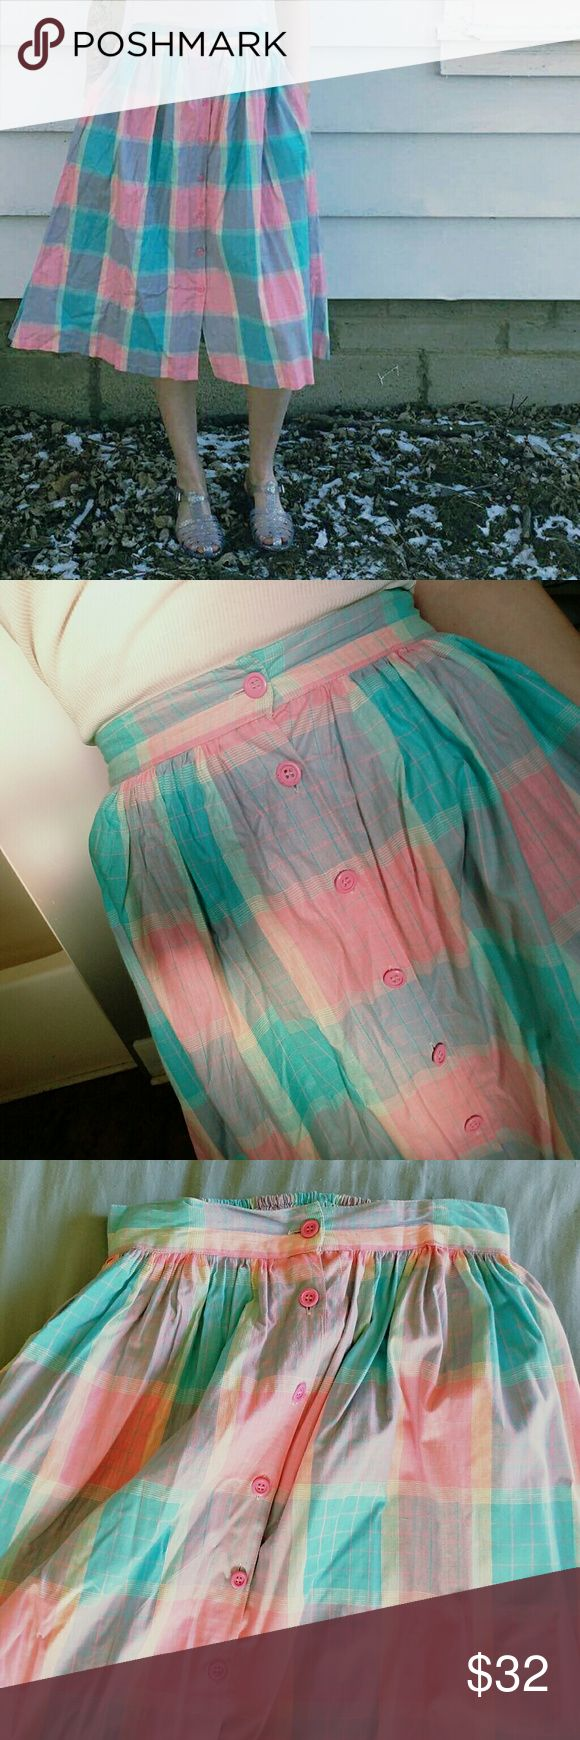 Vtg 90's Pastel Skirt Full, button front, vintage skirt Fits a size S/M, has an elastic waist.   So perfect for spring with the light pink and blue colors   Tags Lolita pastel vintage retro high waist bottoms skirt poofy grunge hipster hippie mom picnic wear Vintage Skirts Midi